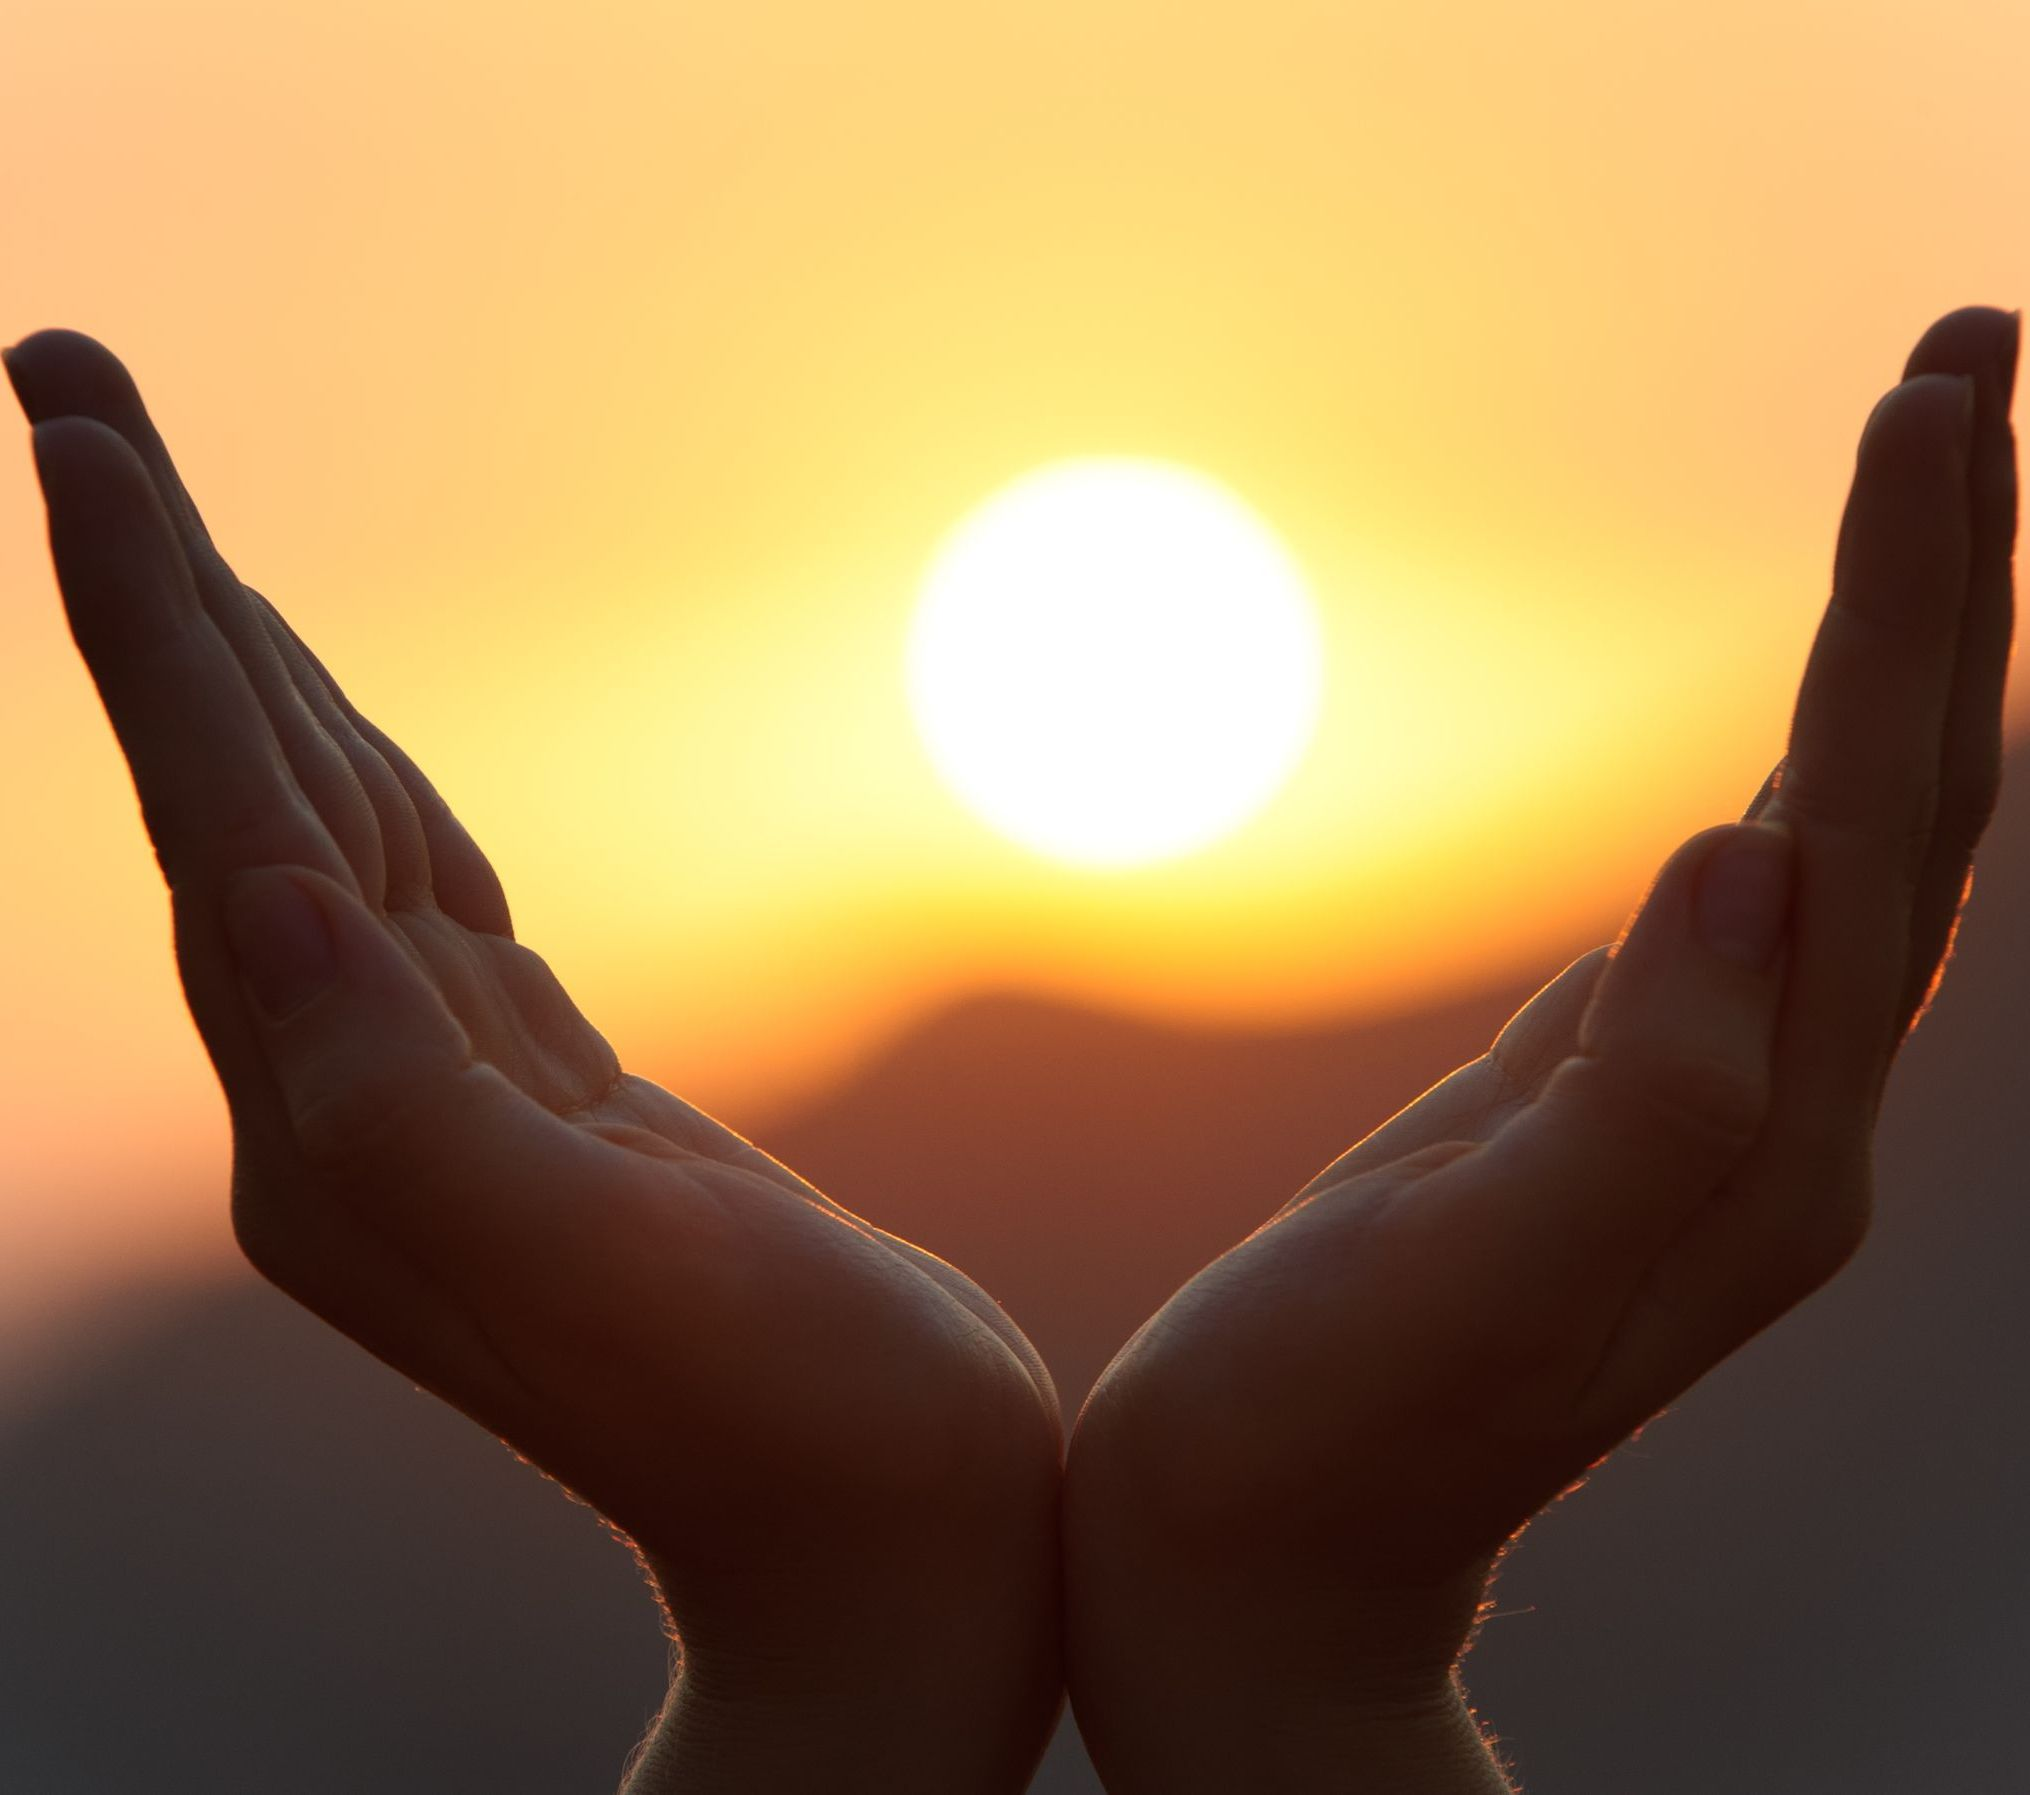 Close-up image of open hands with a sunrise/sunset in the background